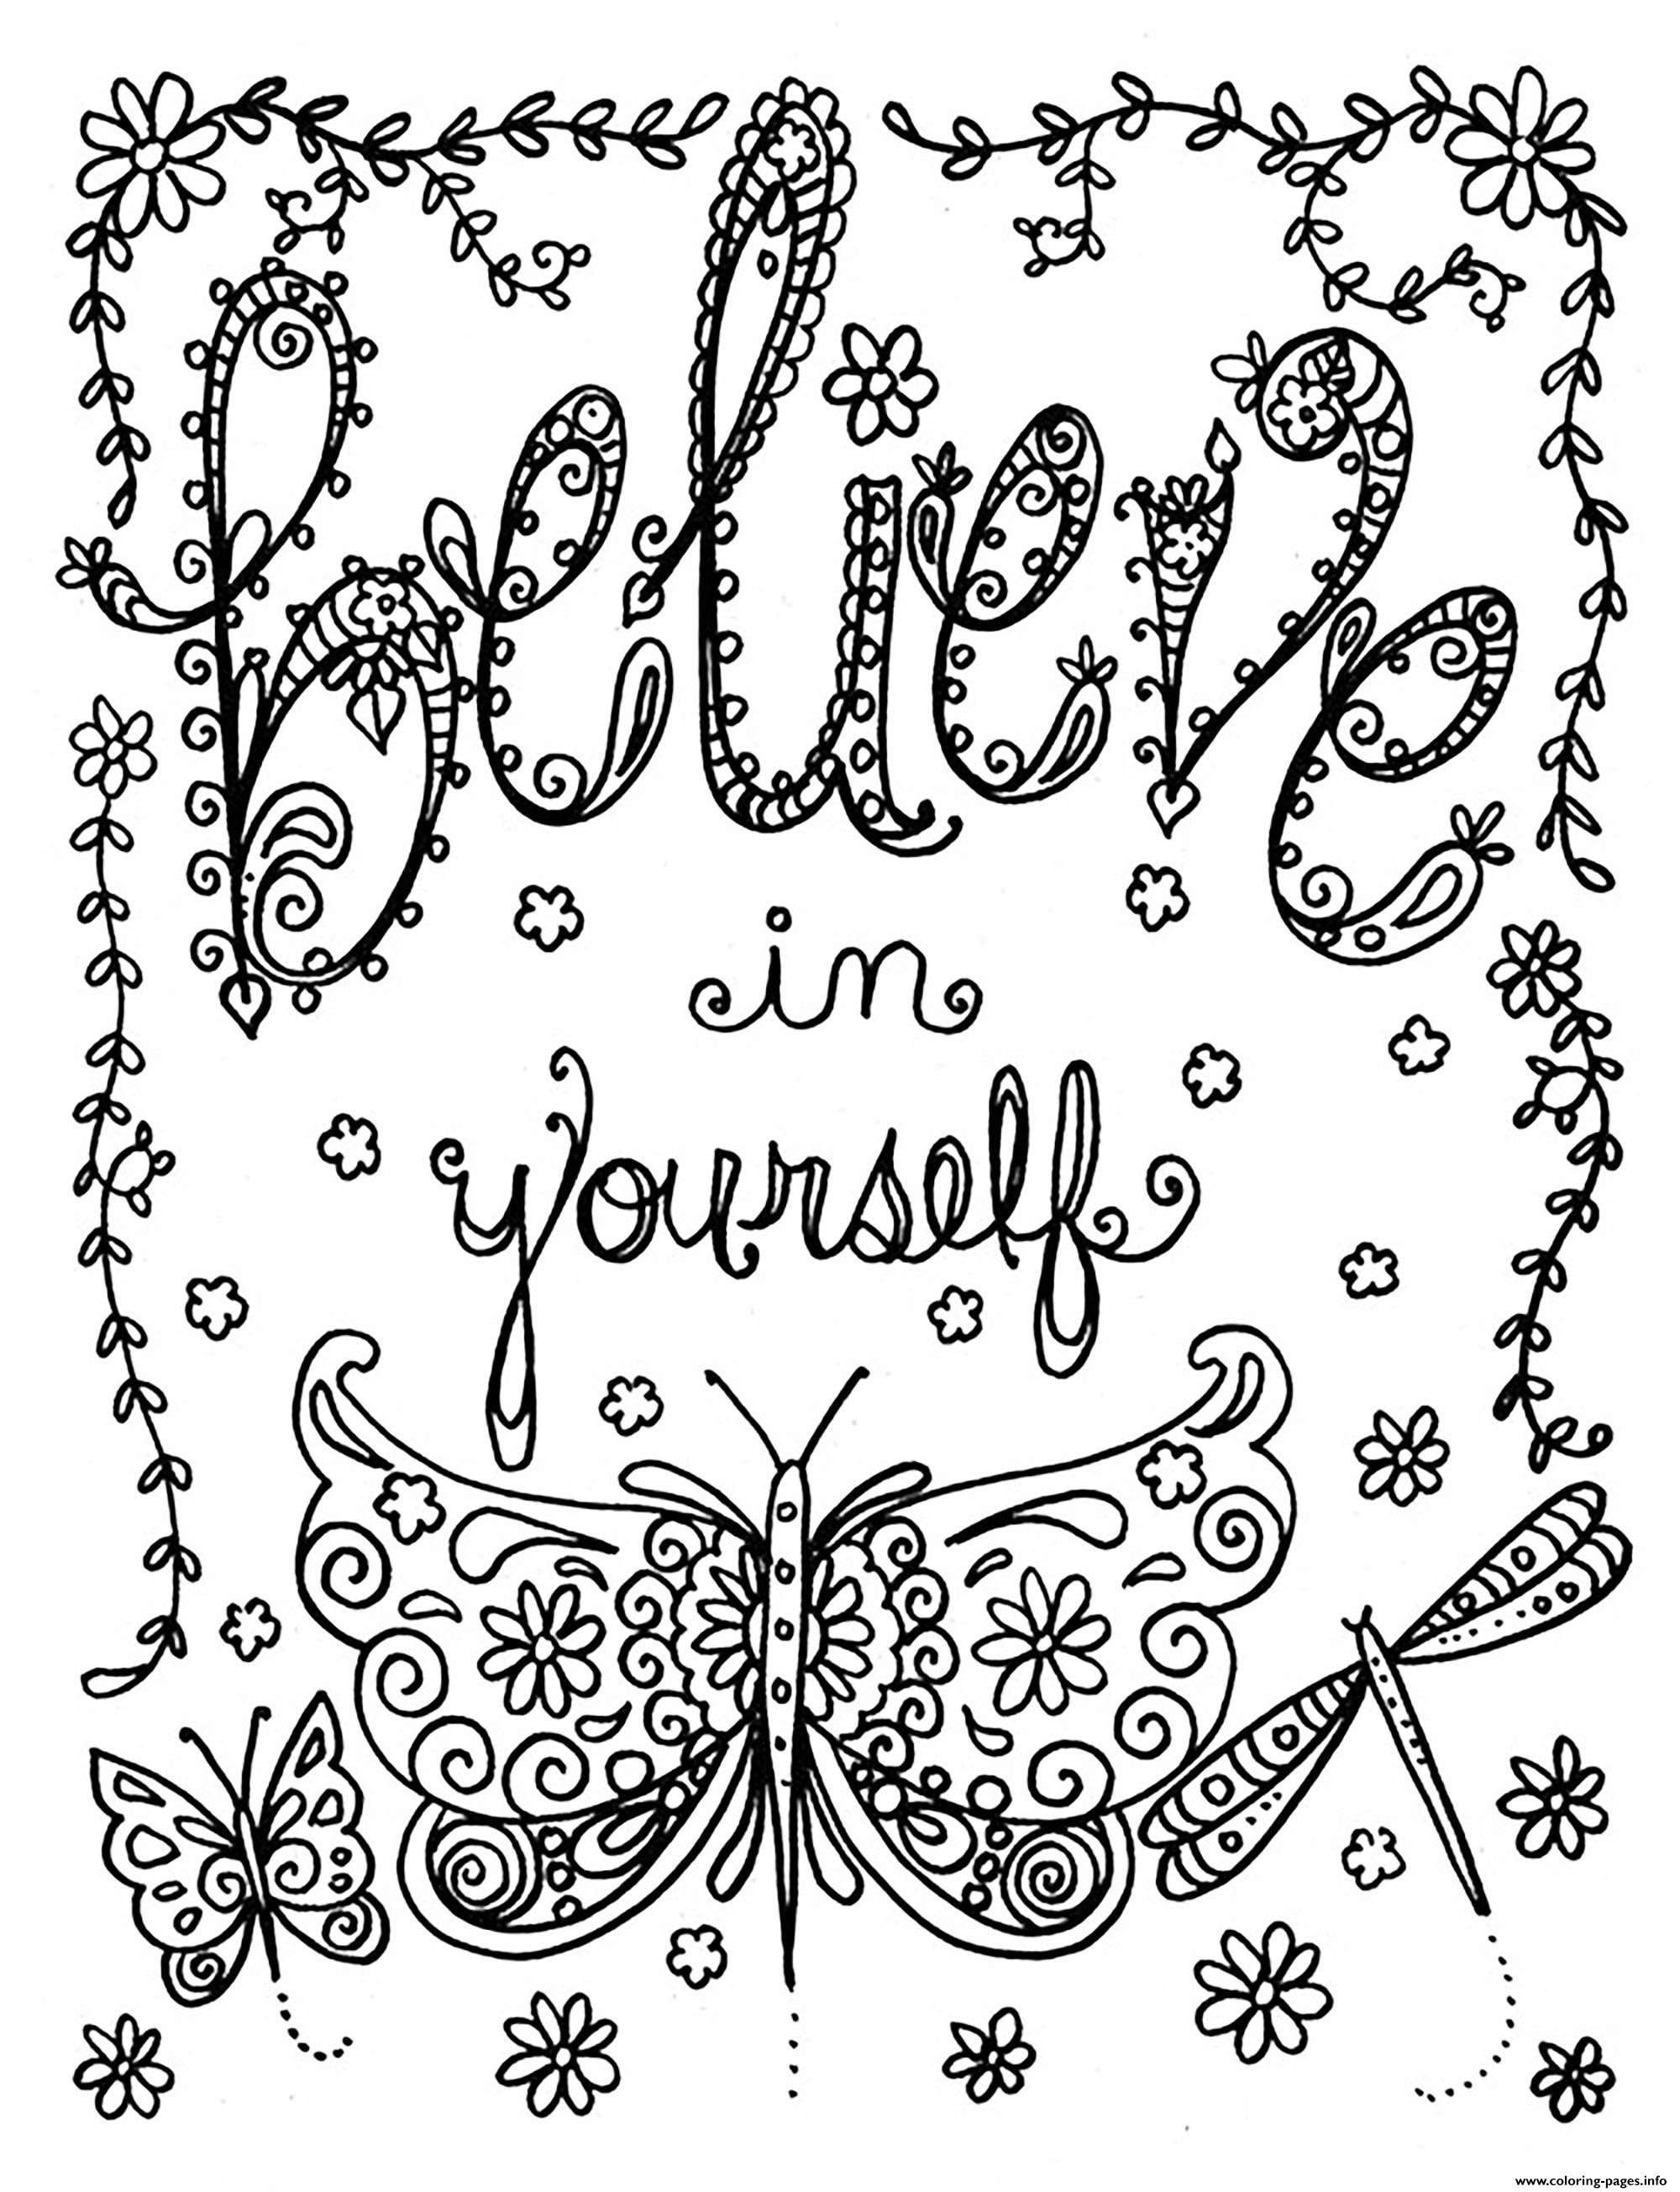 Adult Believe In Yourself By Deborah Muller coloring pages